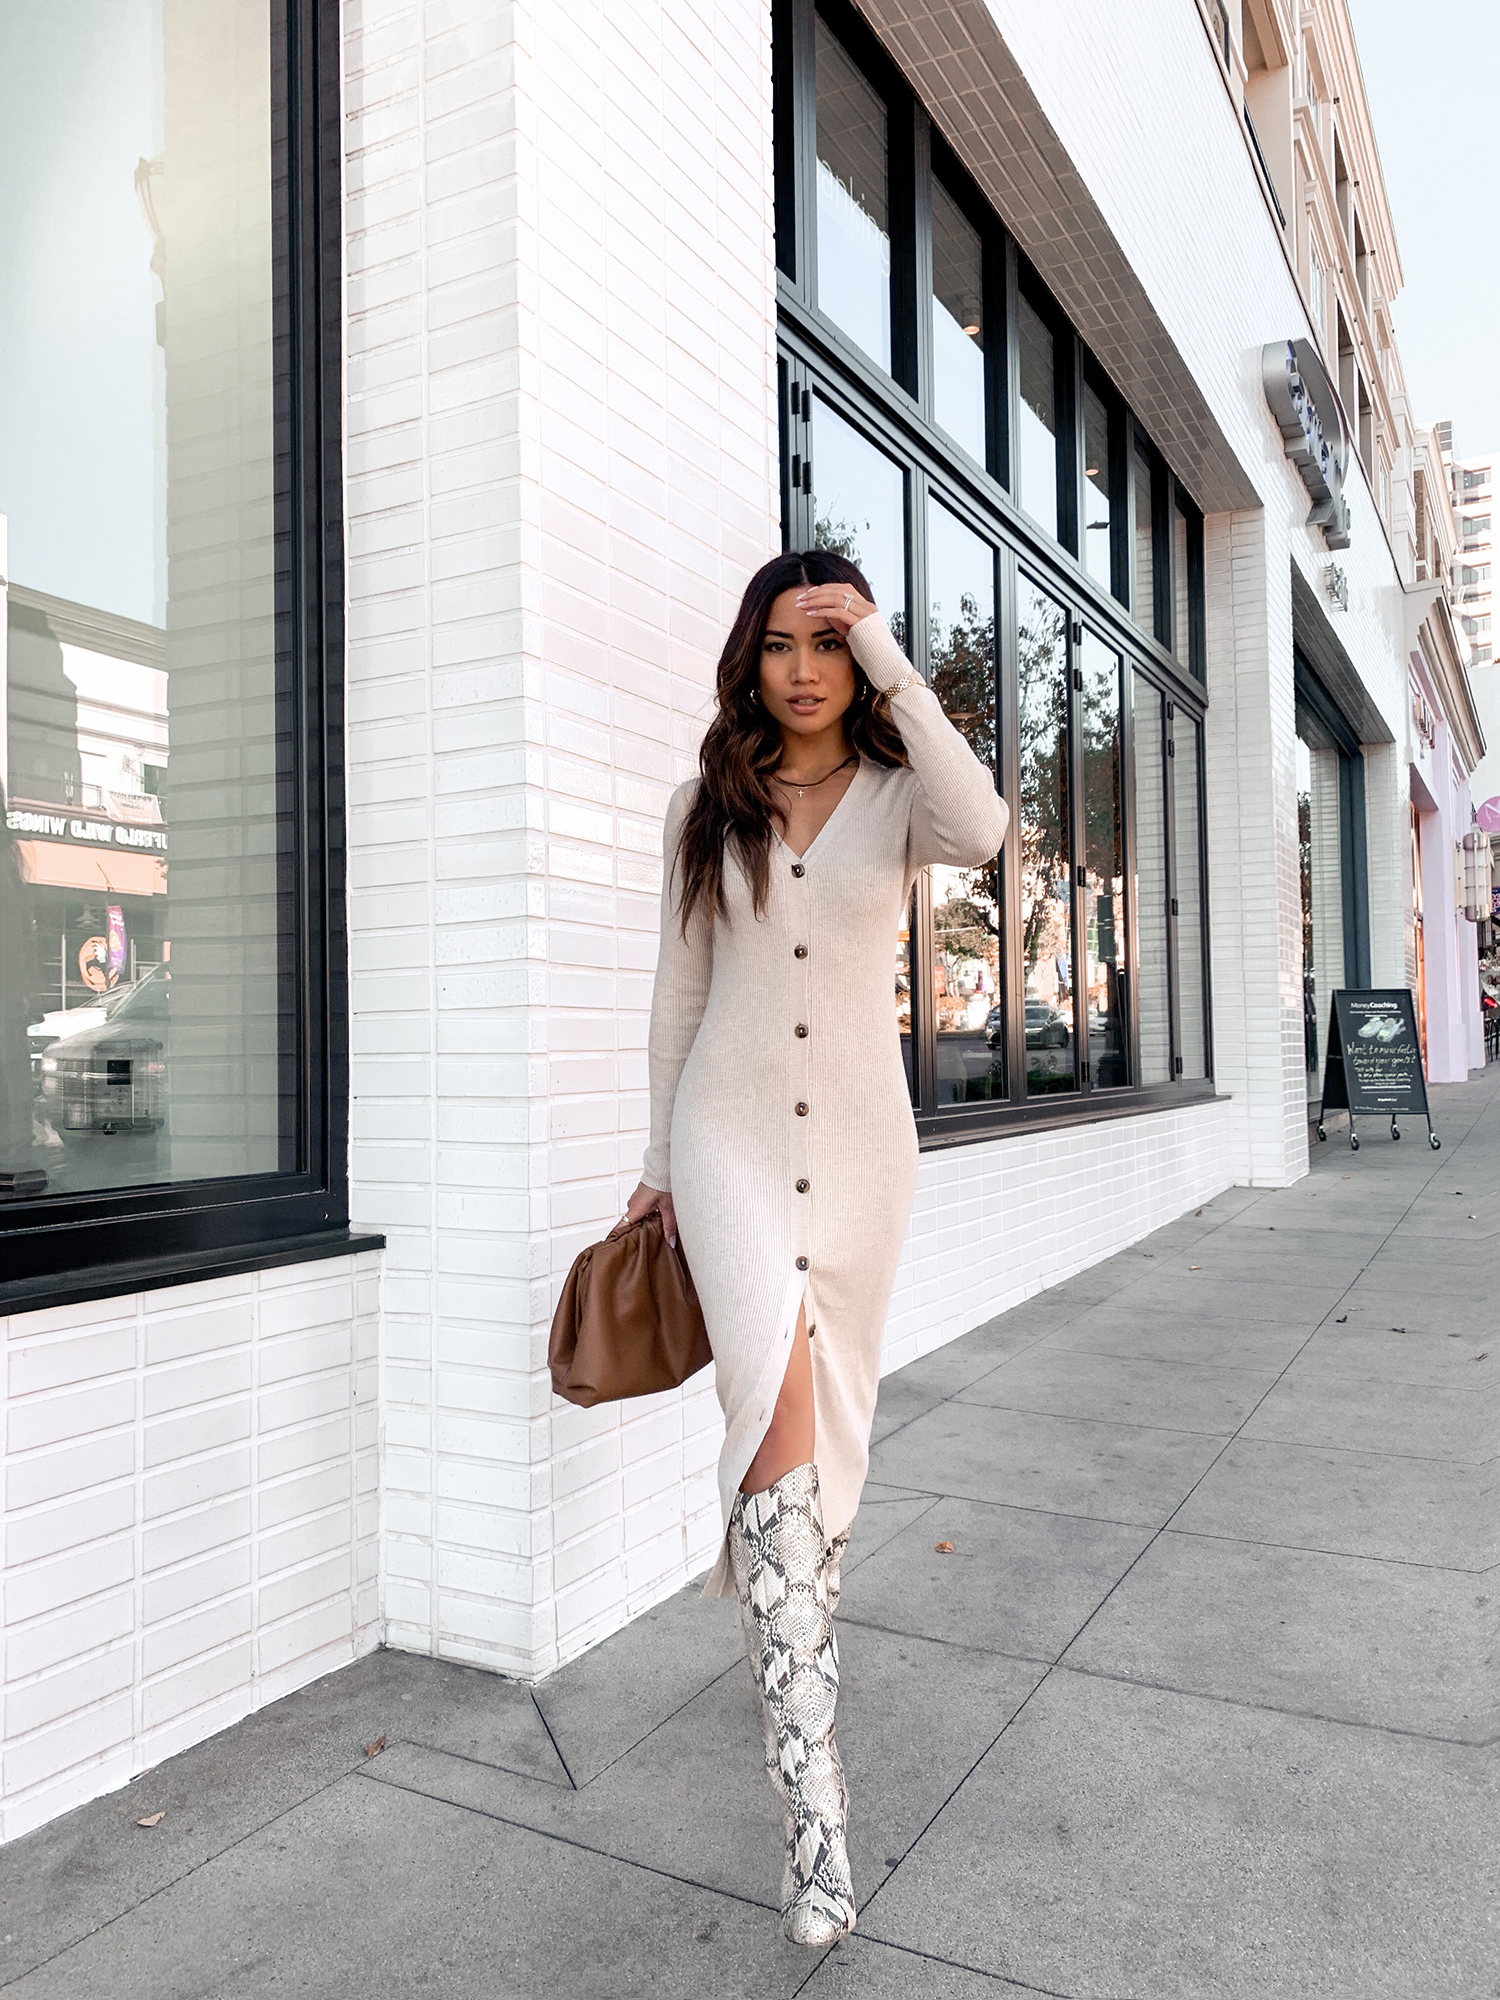 Jessi Malay wearing Sanctuary Sweater Dress